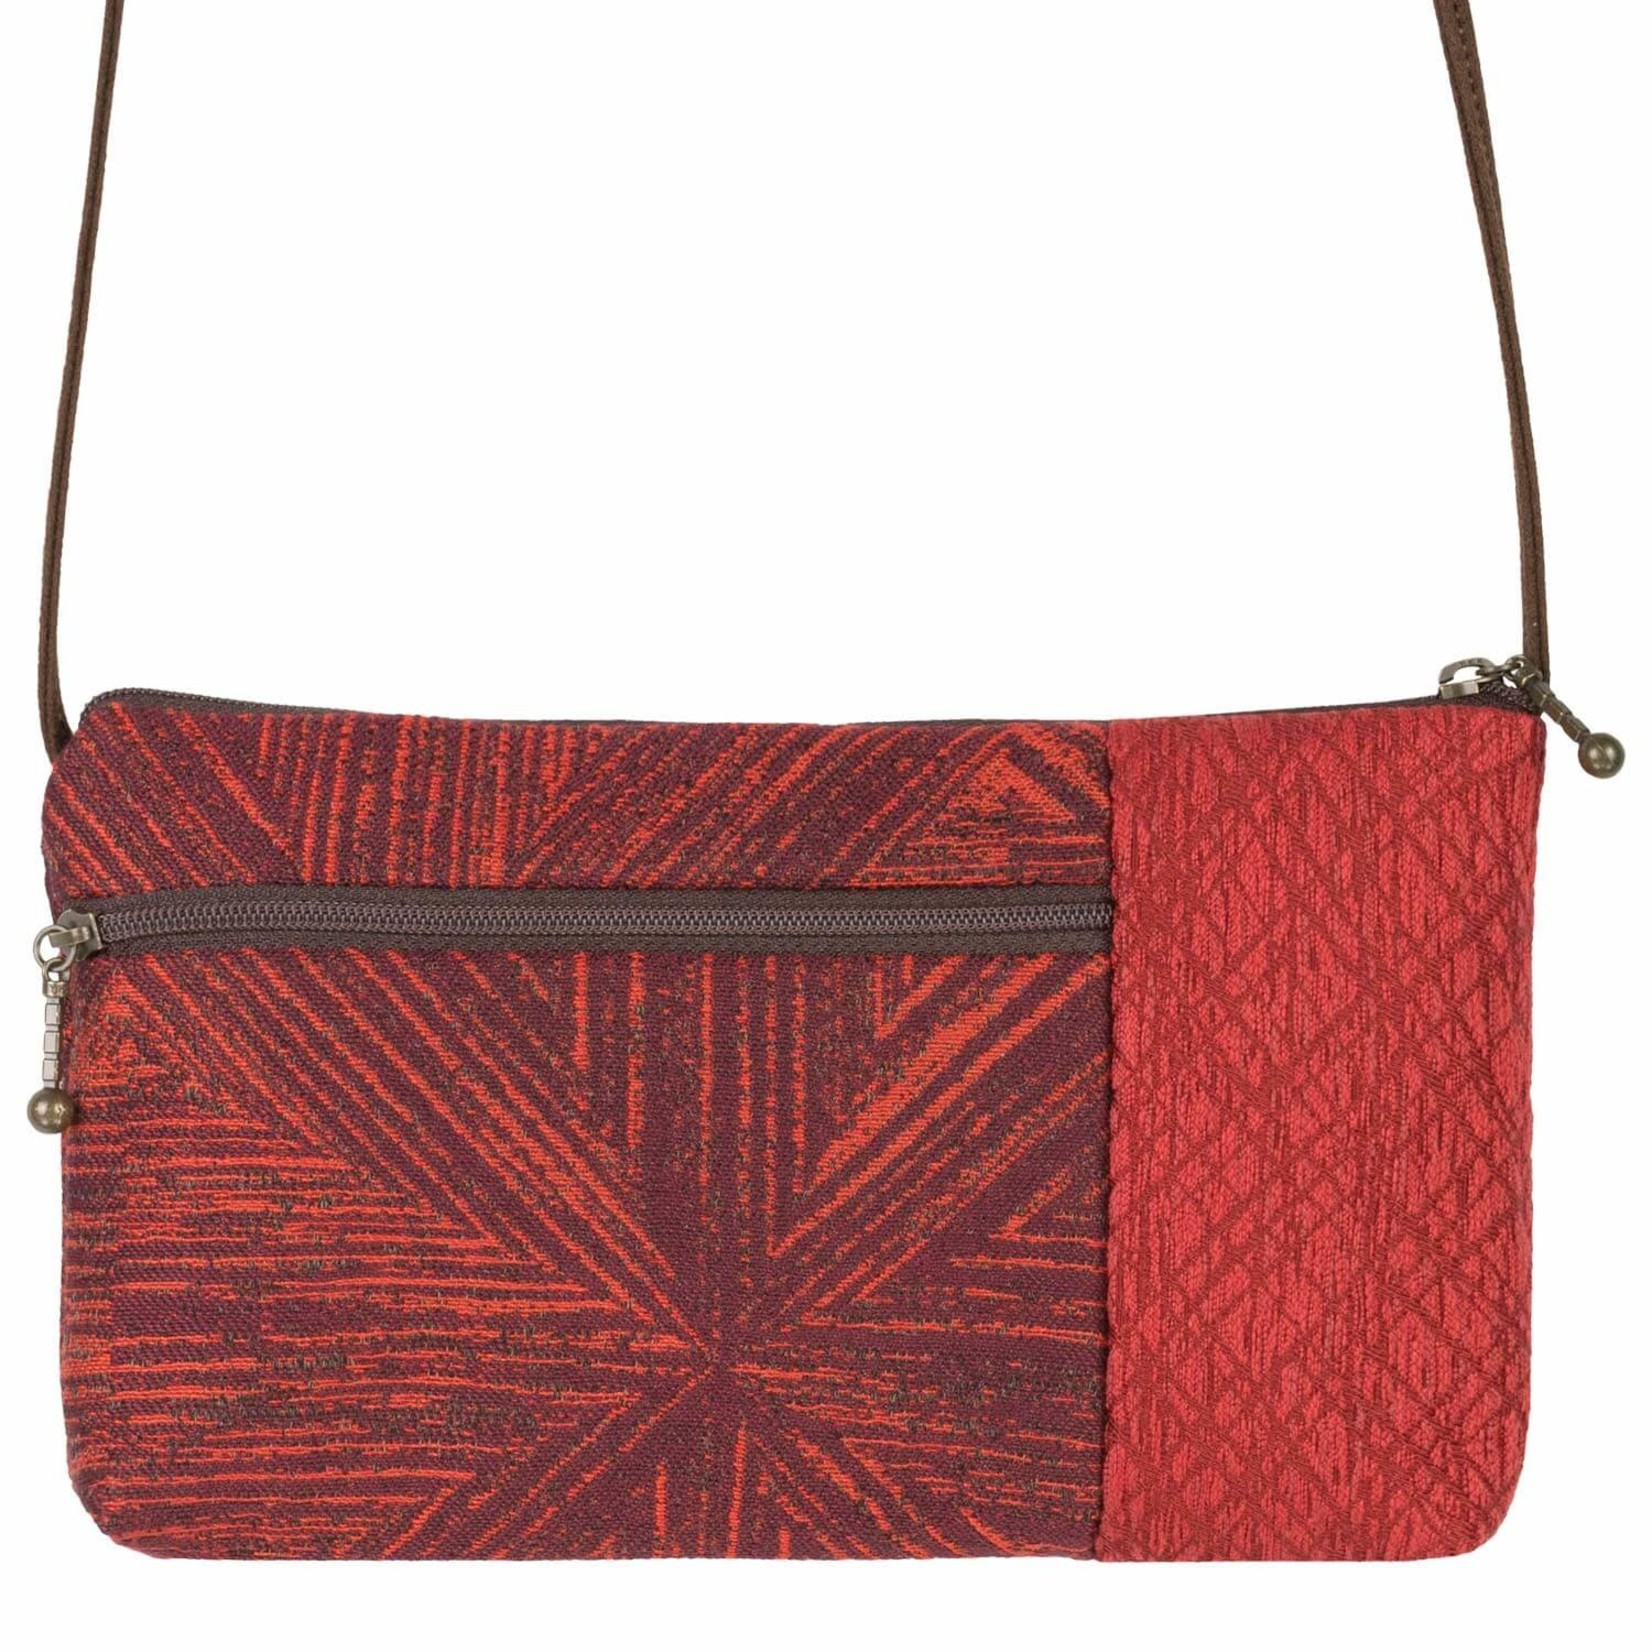 Maruca Tomboy FW21 - Heartwood Red